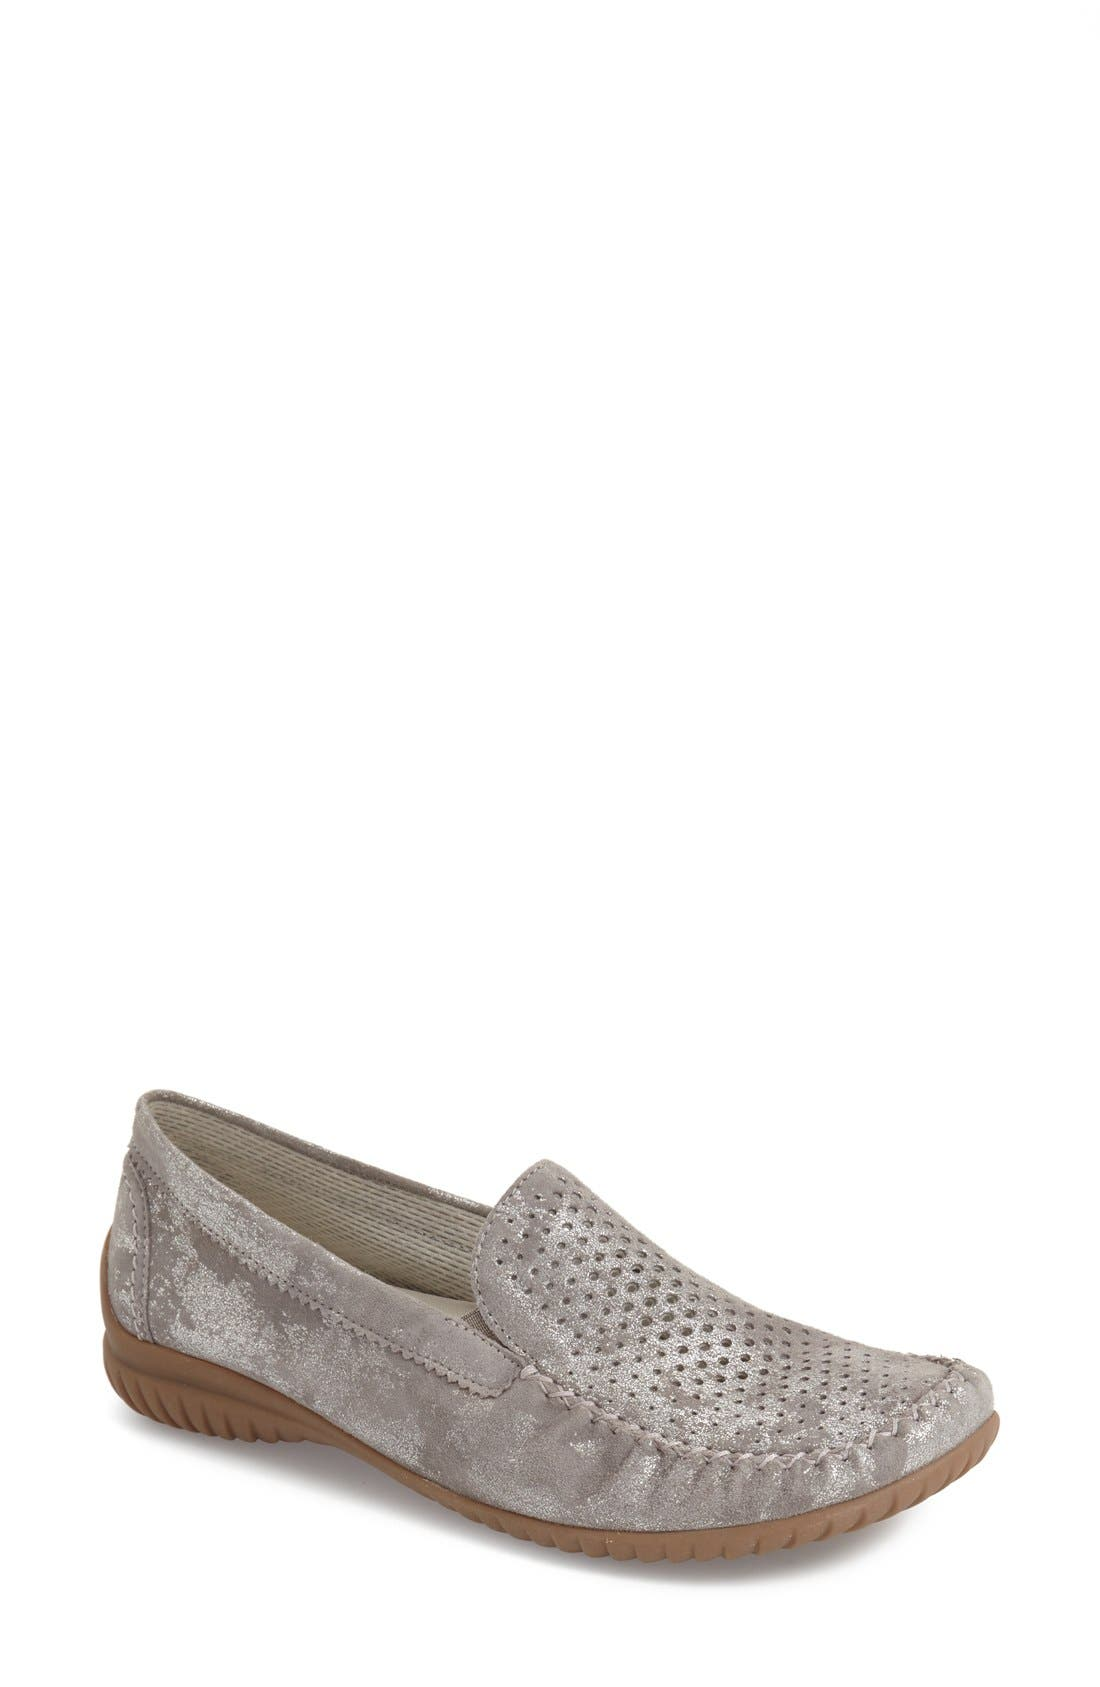 Alternate Image 1 Selected - Gabor Perforated Loafer (Women)